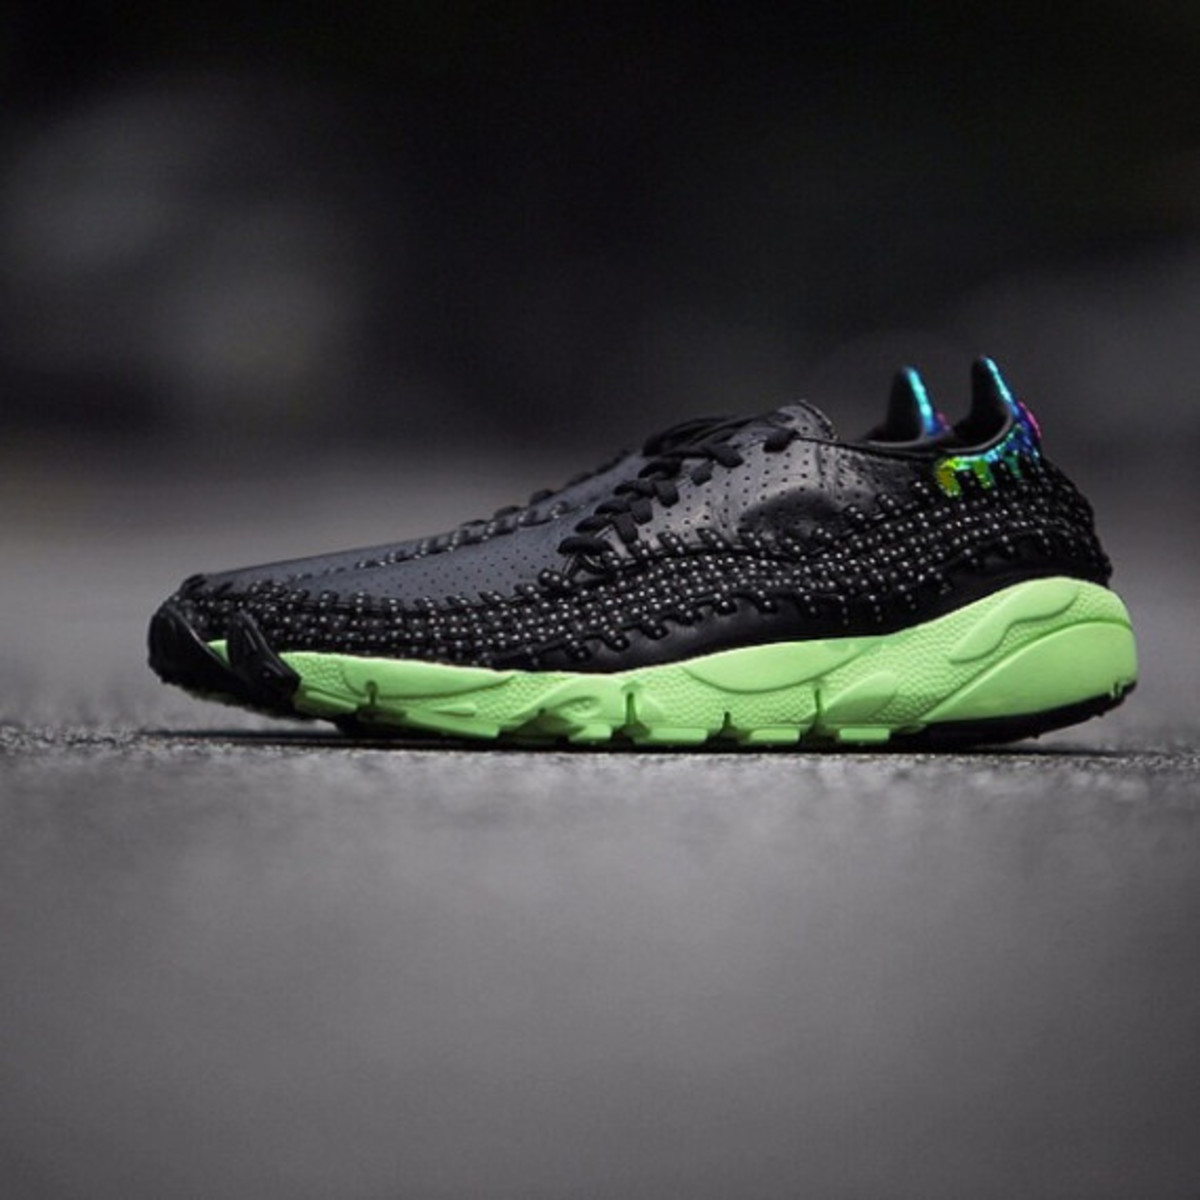 """Nike Sportswear """"City Pack: Shanghai"""" Collection - 1"""